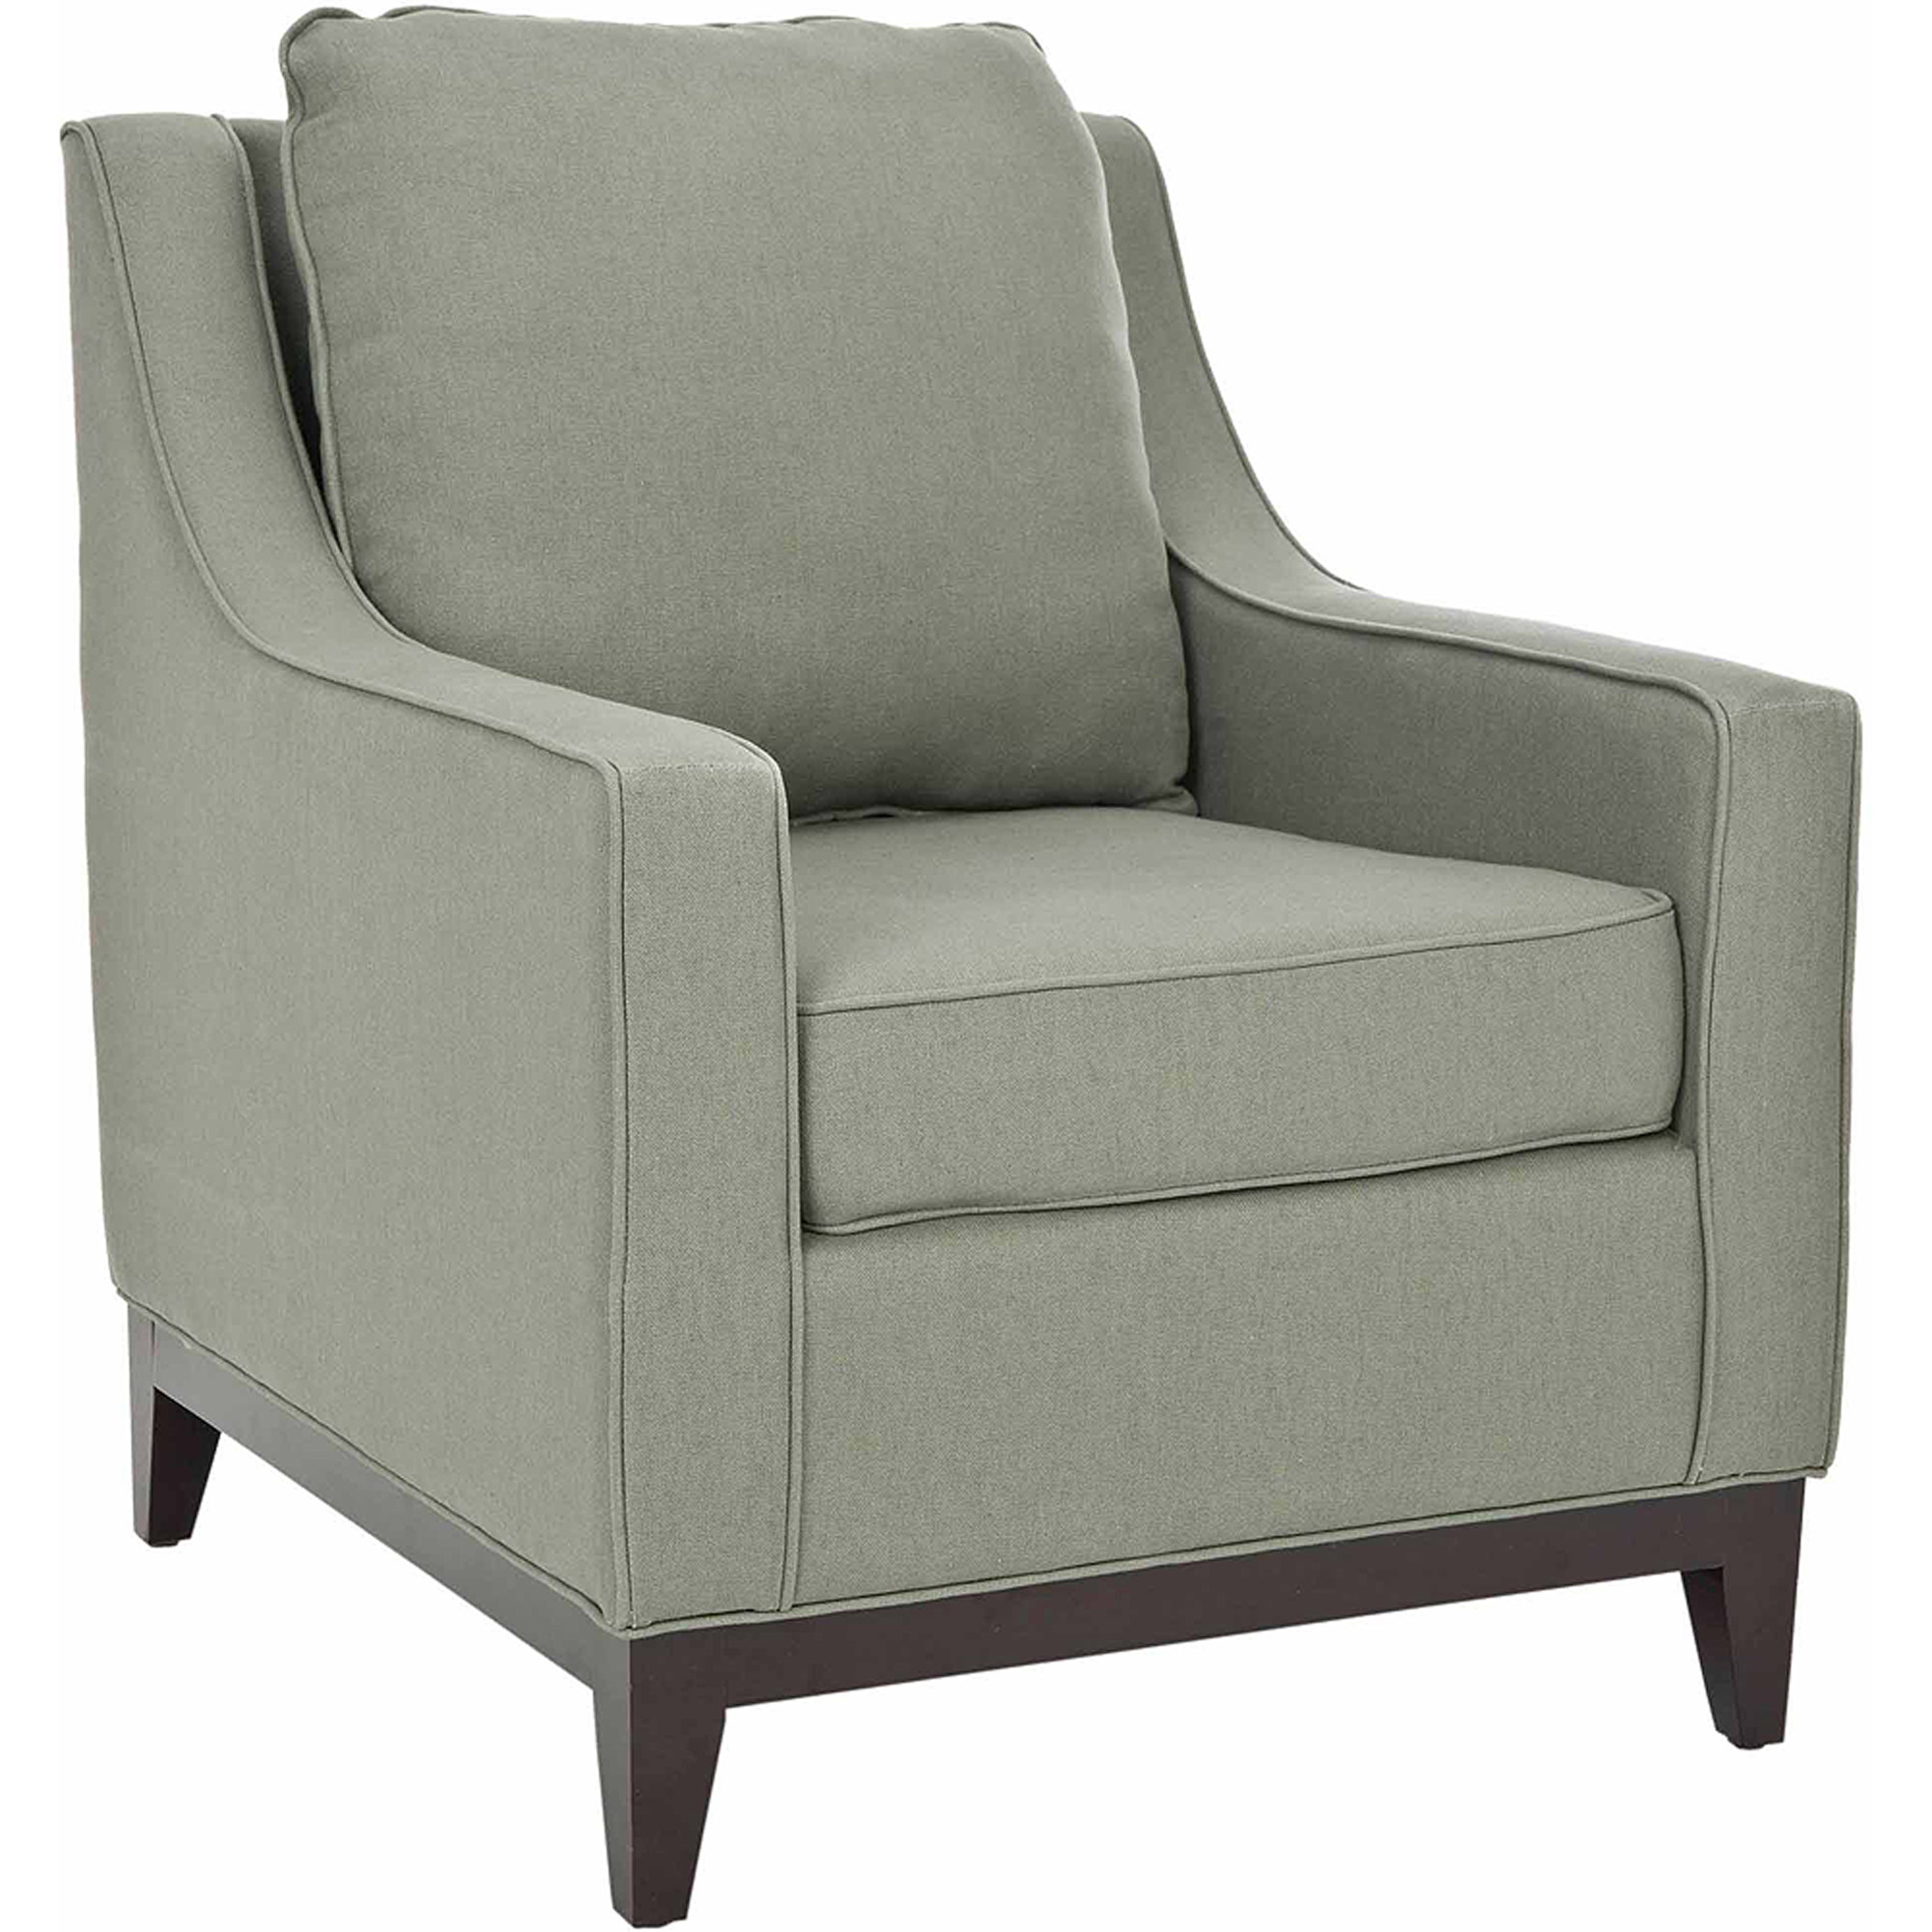 Safavieh Colton Upholstered Club Chair, Multiple Colors